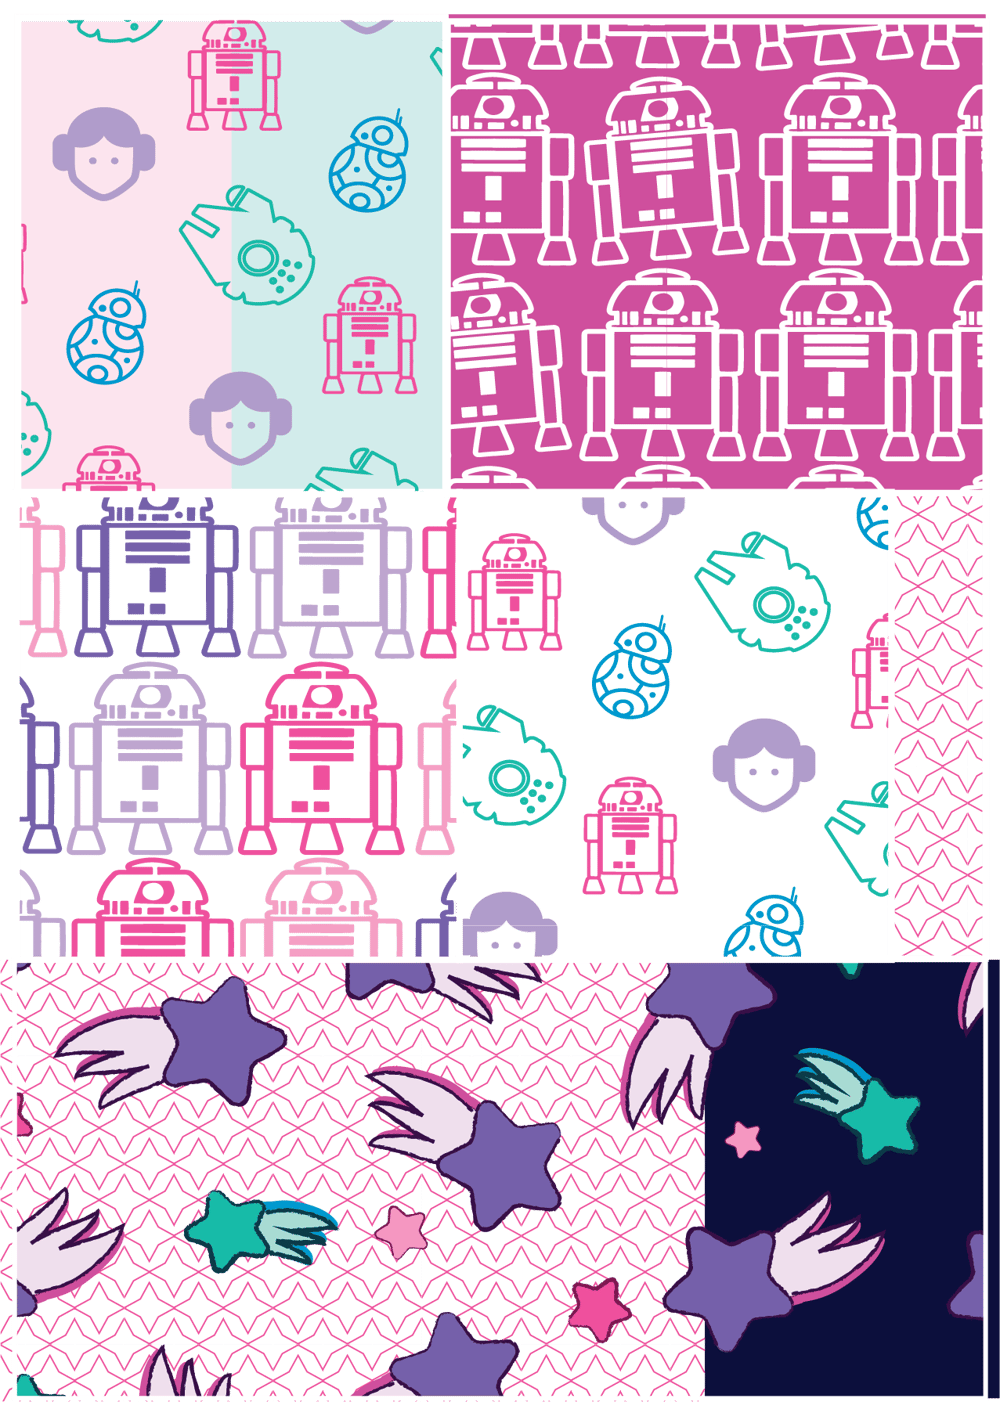 Pattern recipe template trial - image 1 - student project